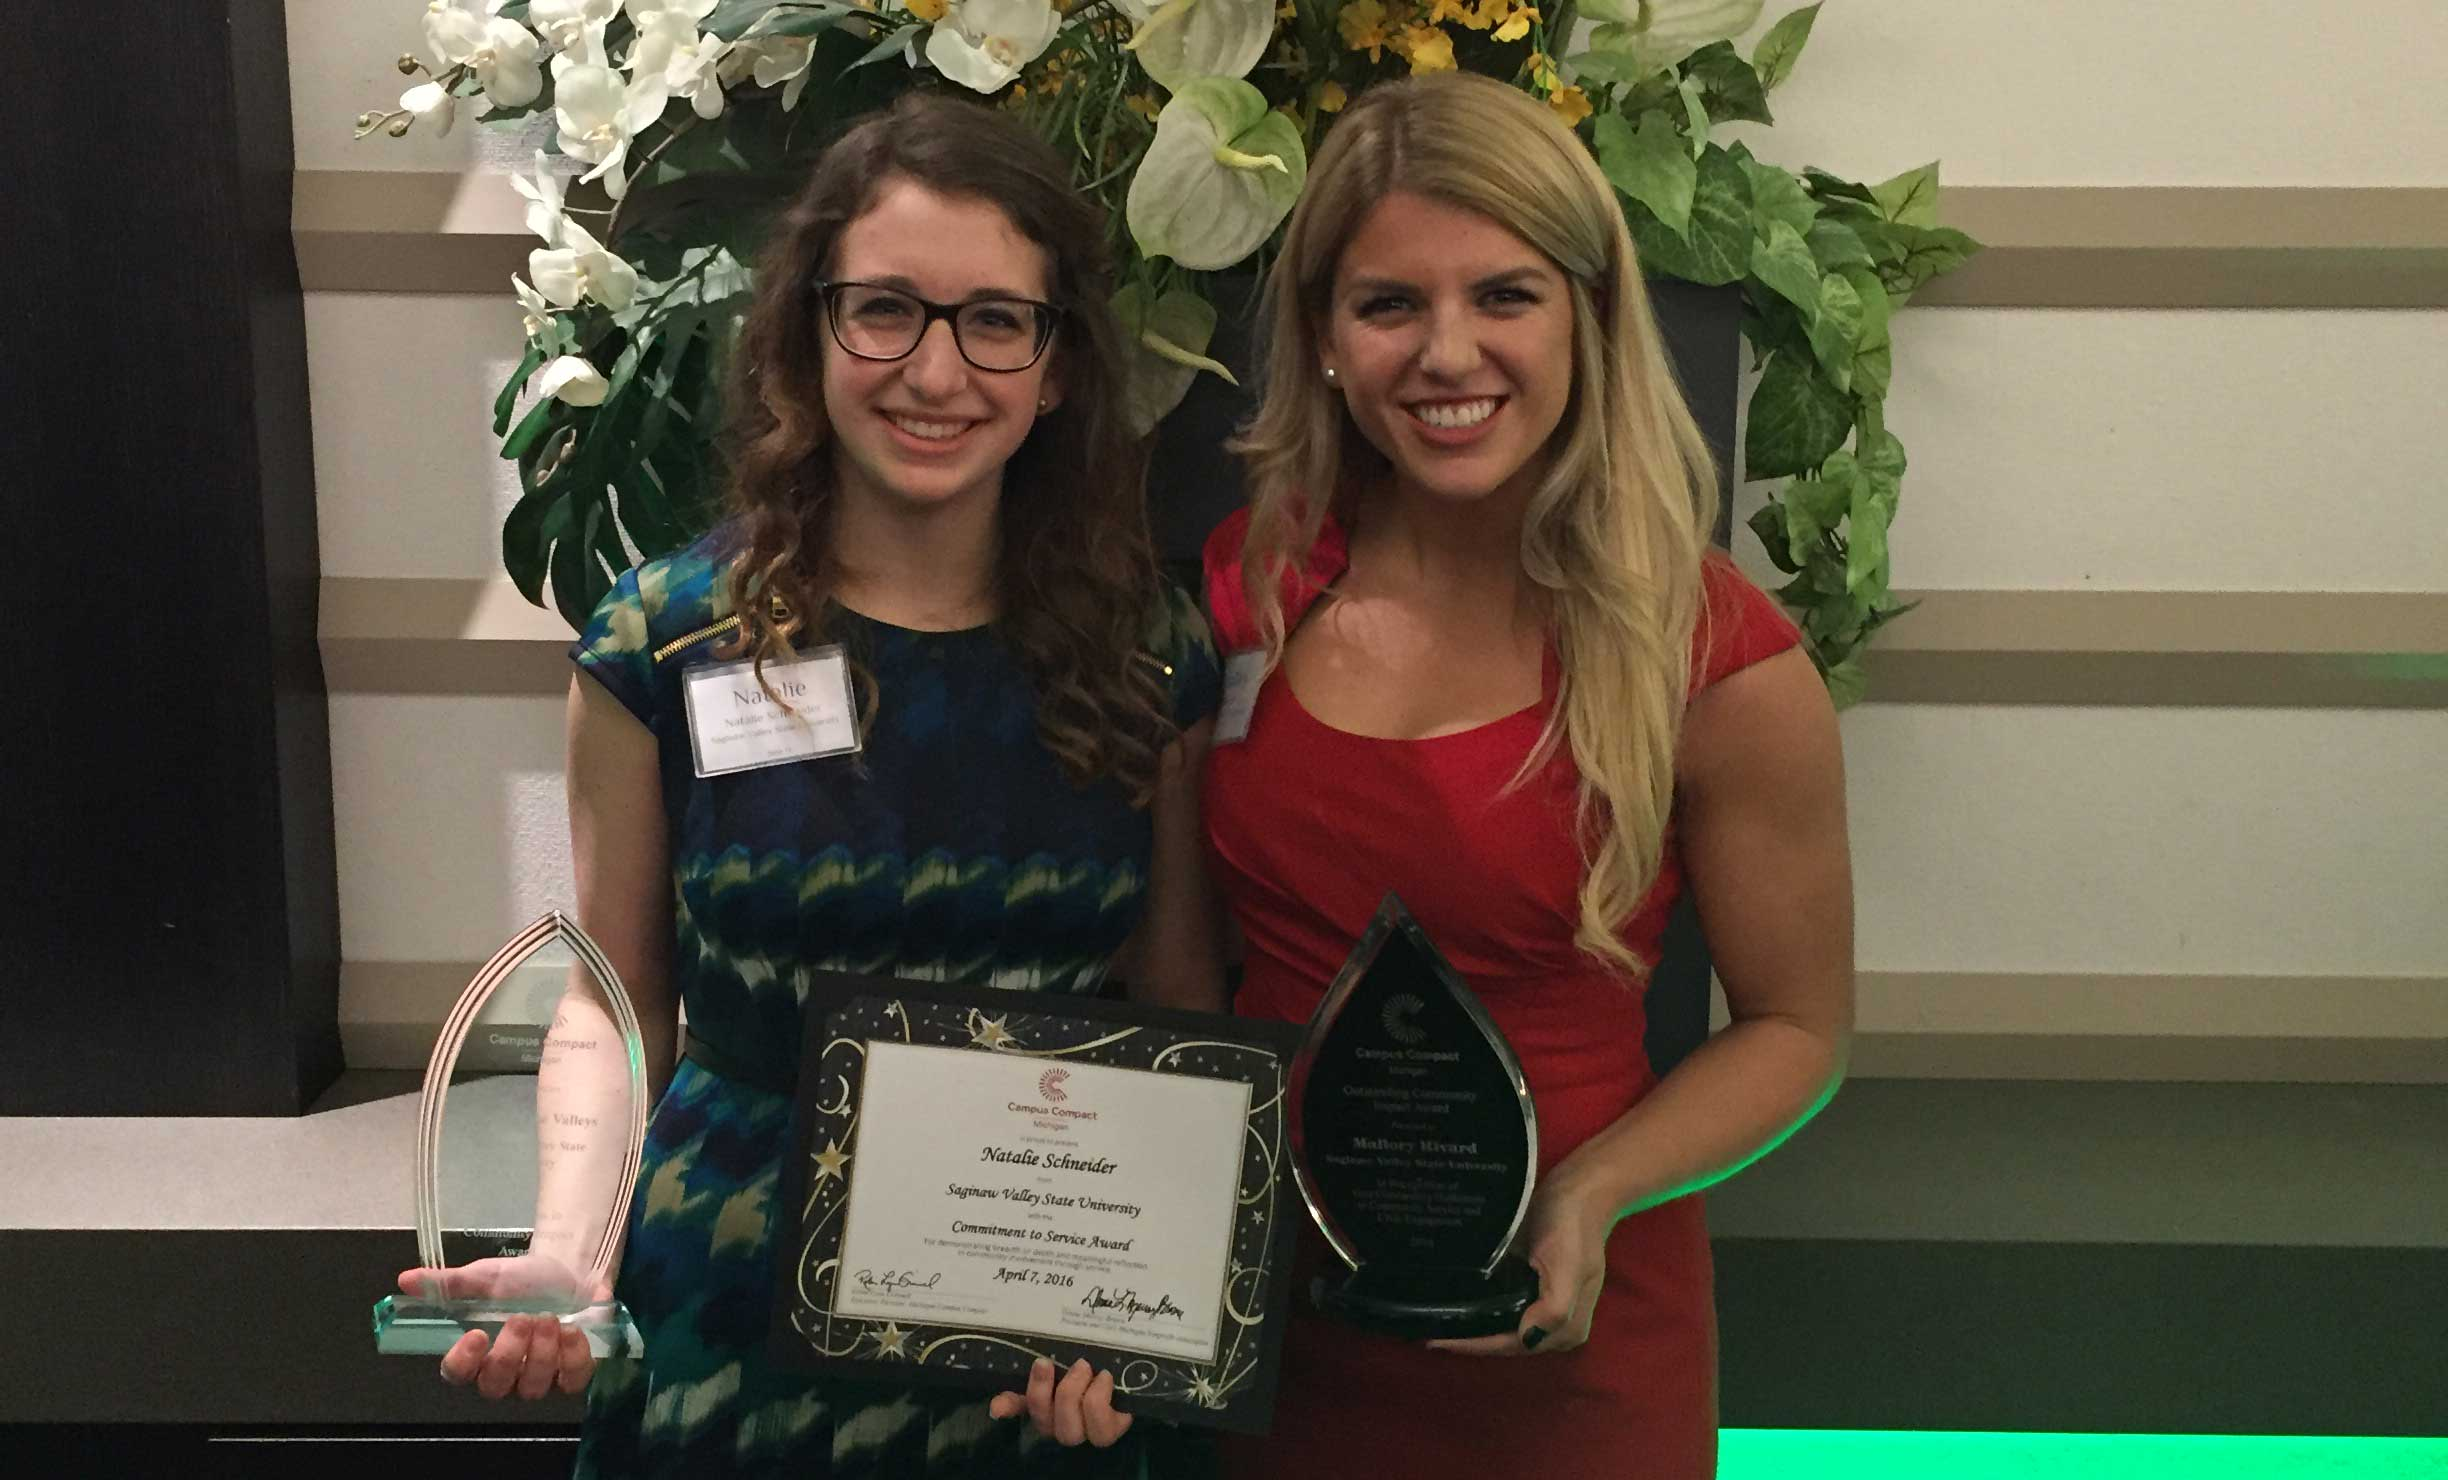 Natalie Schneider and Mallory Rivard were honored for their community-minded actions during the Michigan Campus Compact Awards Gala.